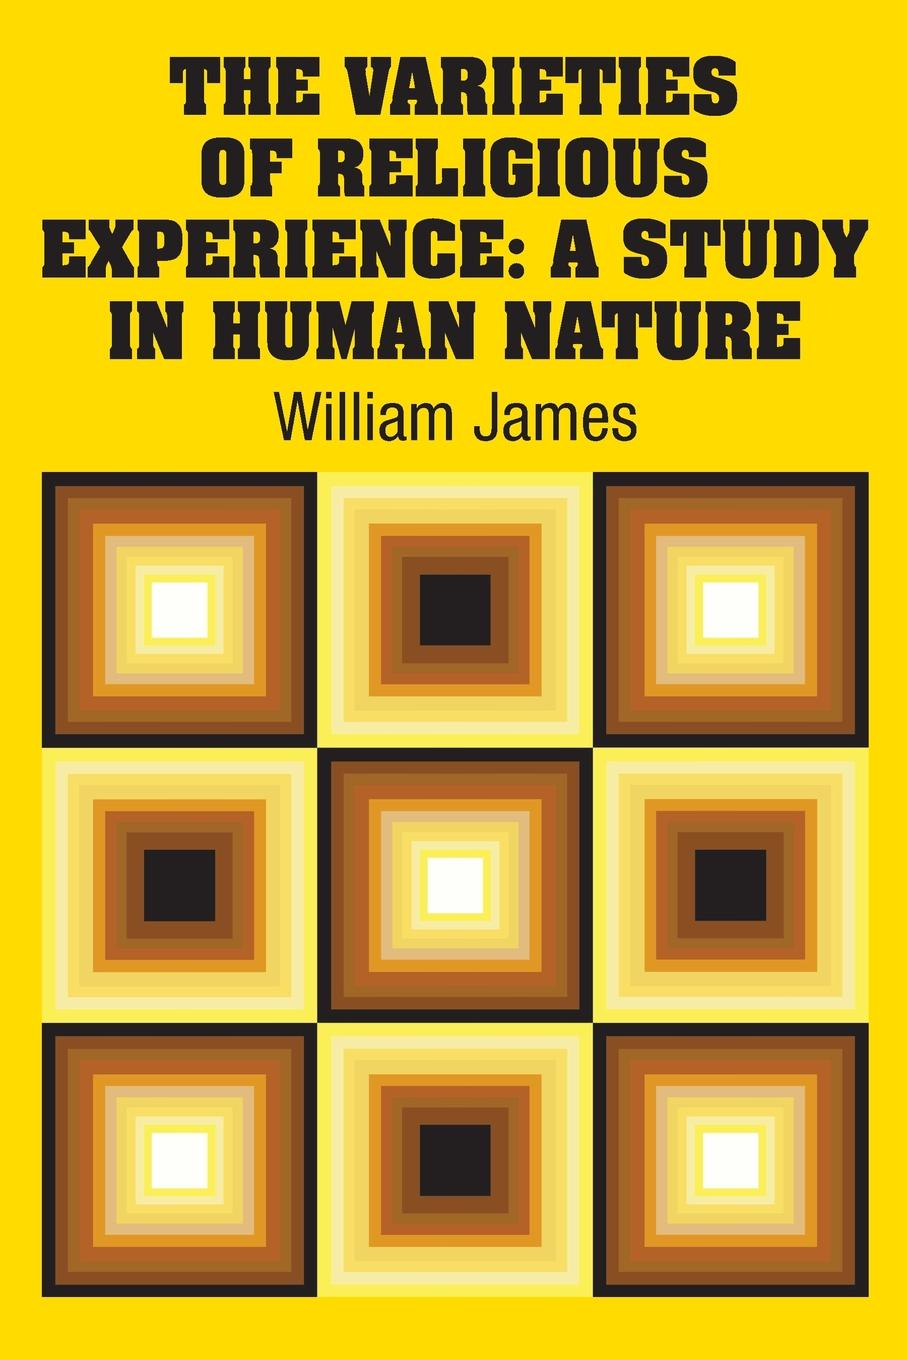 лучшая цена William James The Varieties of Religious Experience. A Study in Human Nature